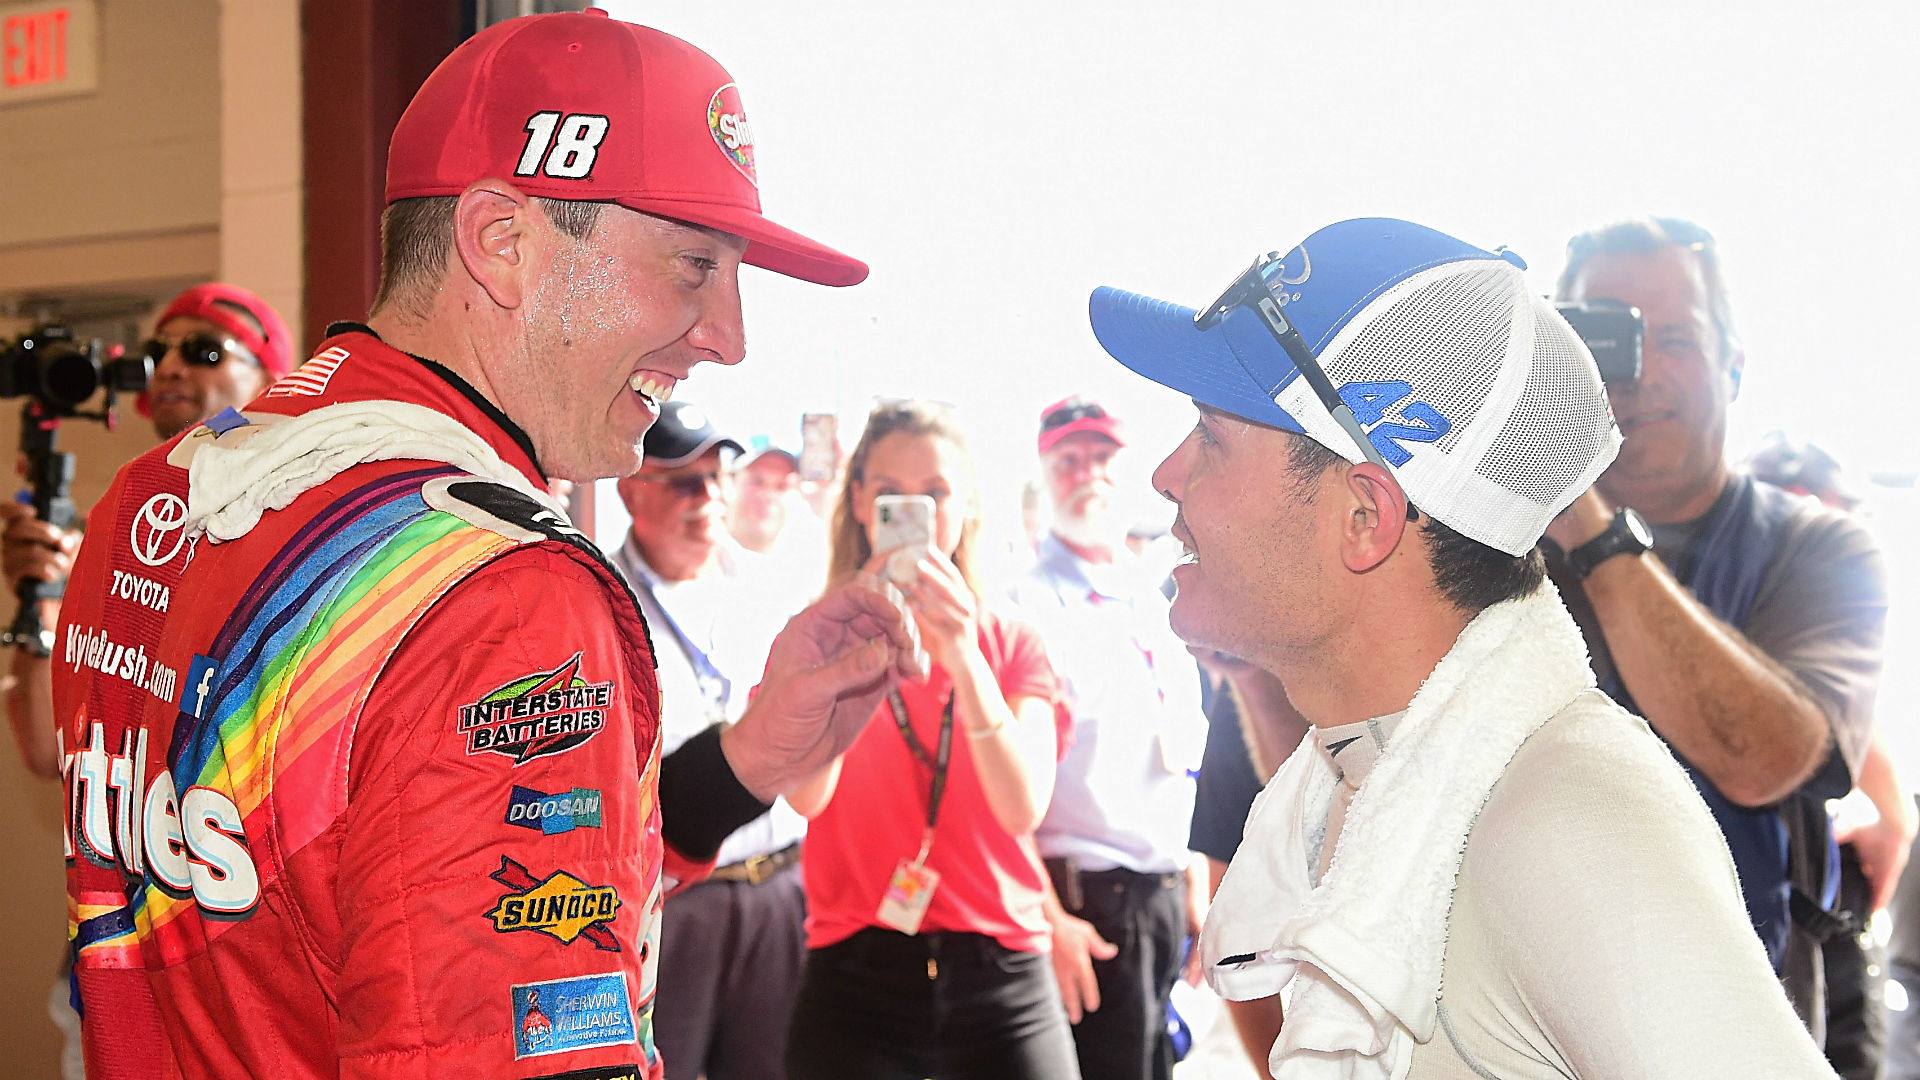 Ricky Stenhouse Jr: 'I was Frustrated with Myself Causing Crashes Like That'